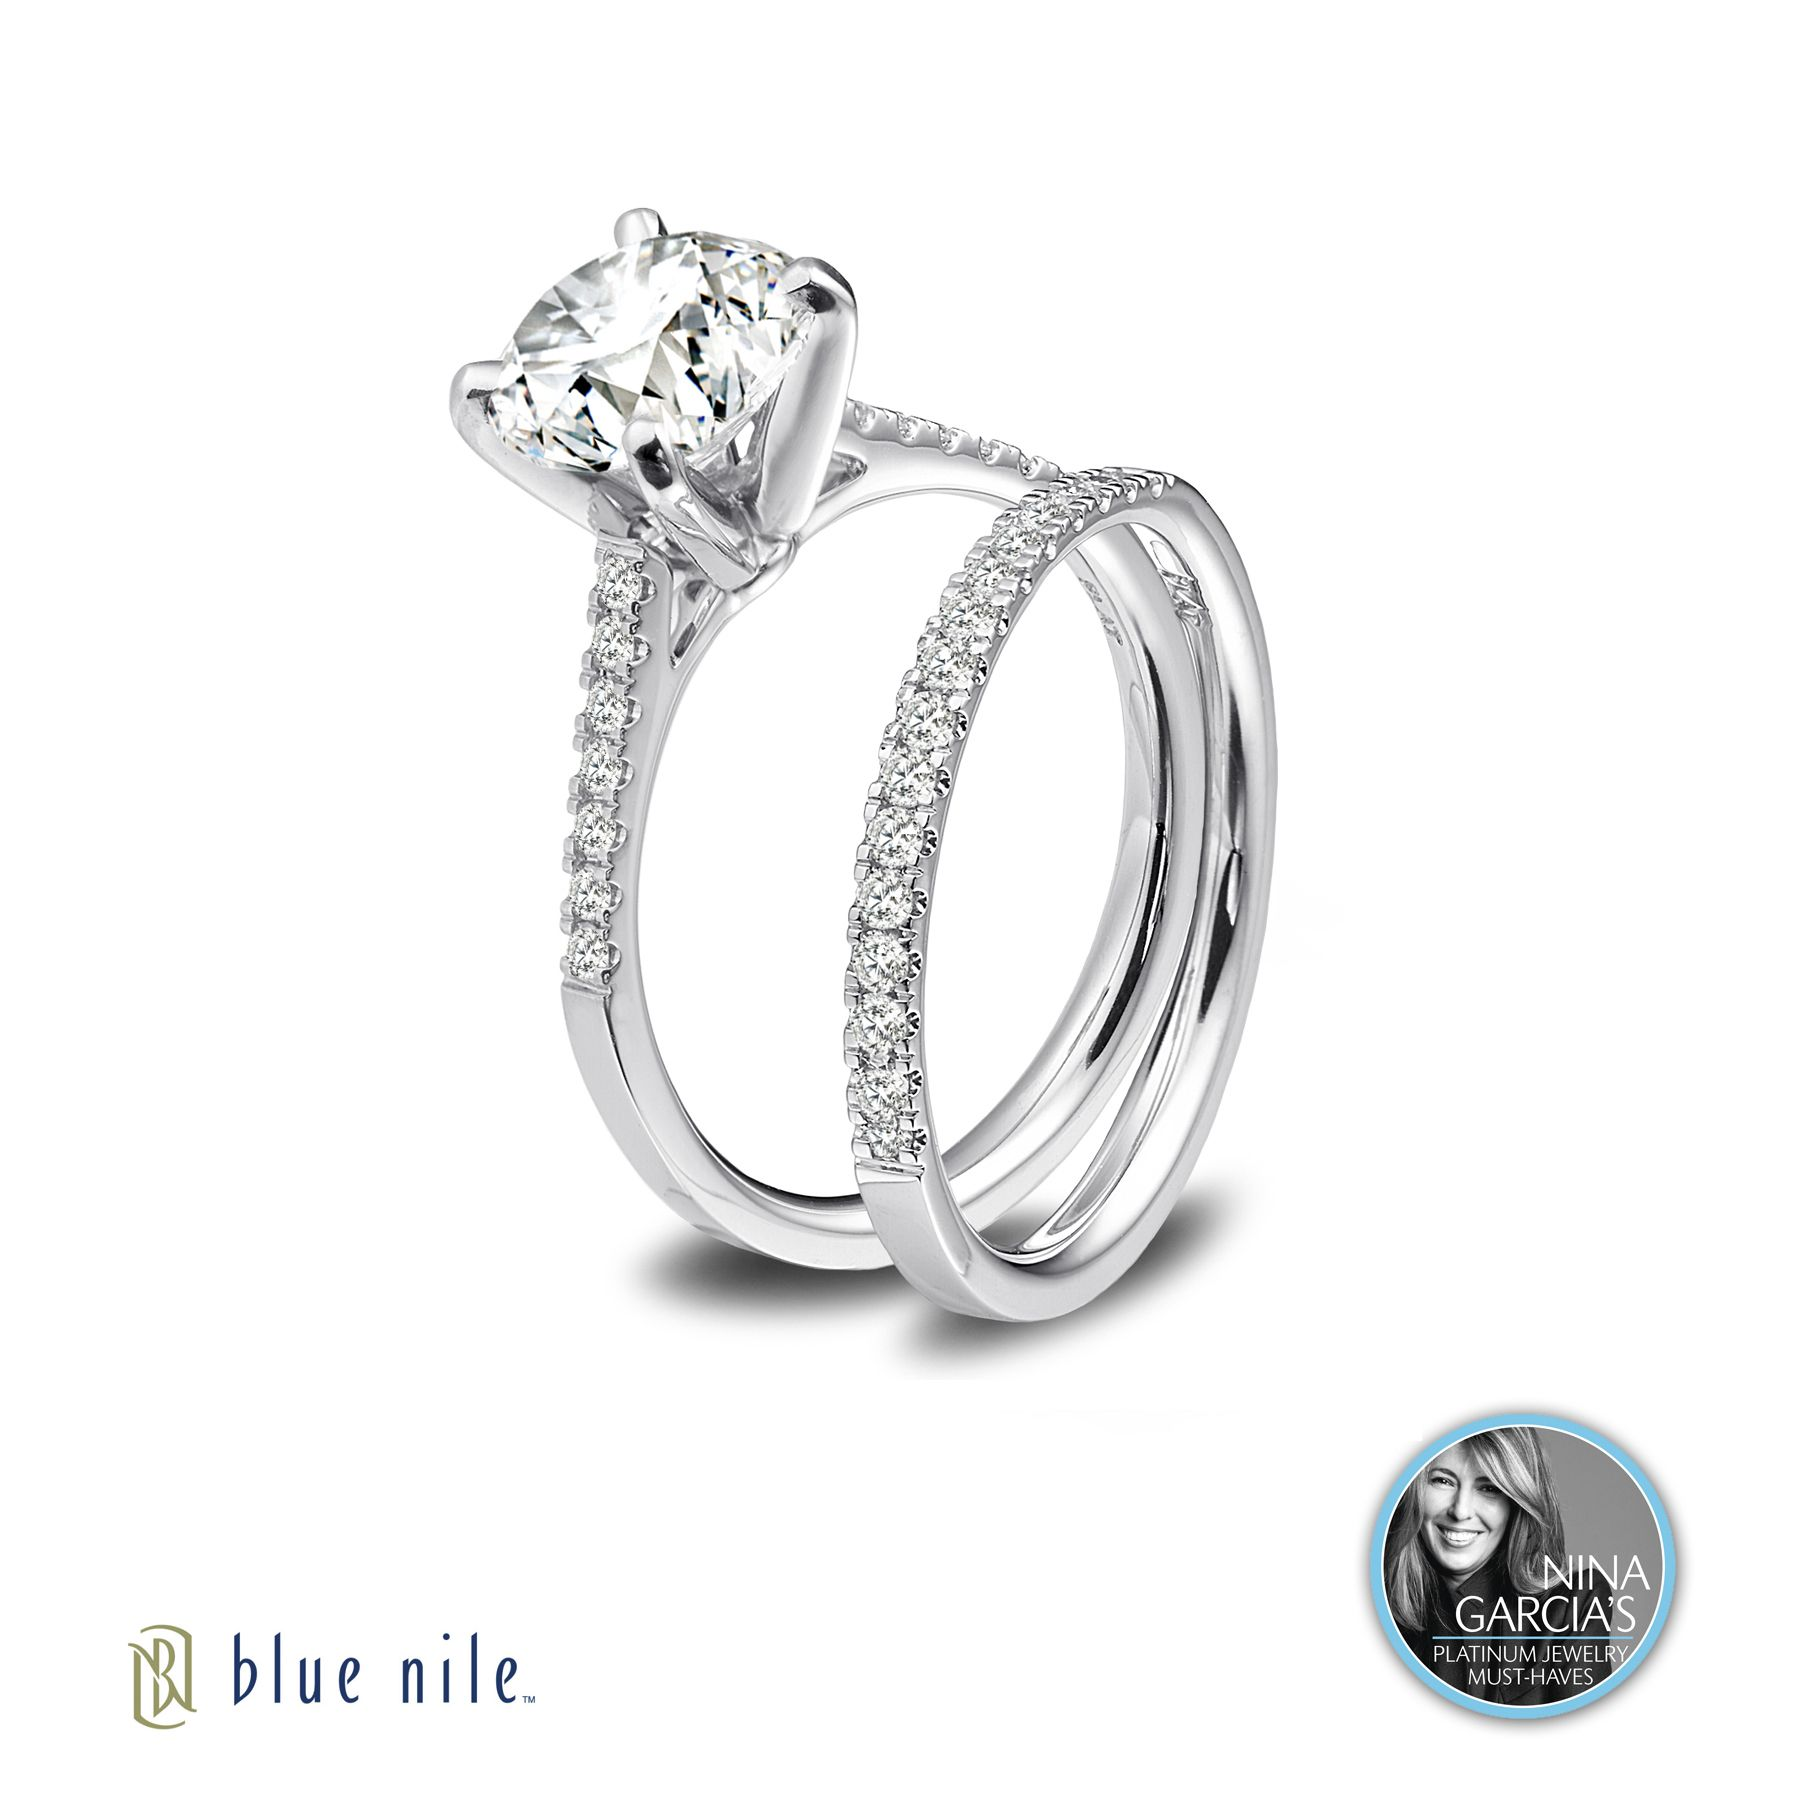 A Nina Garcia platinum must have Blue Nile platinum and diamond